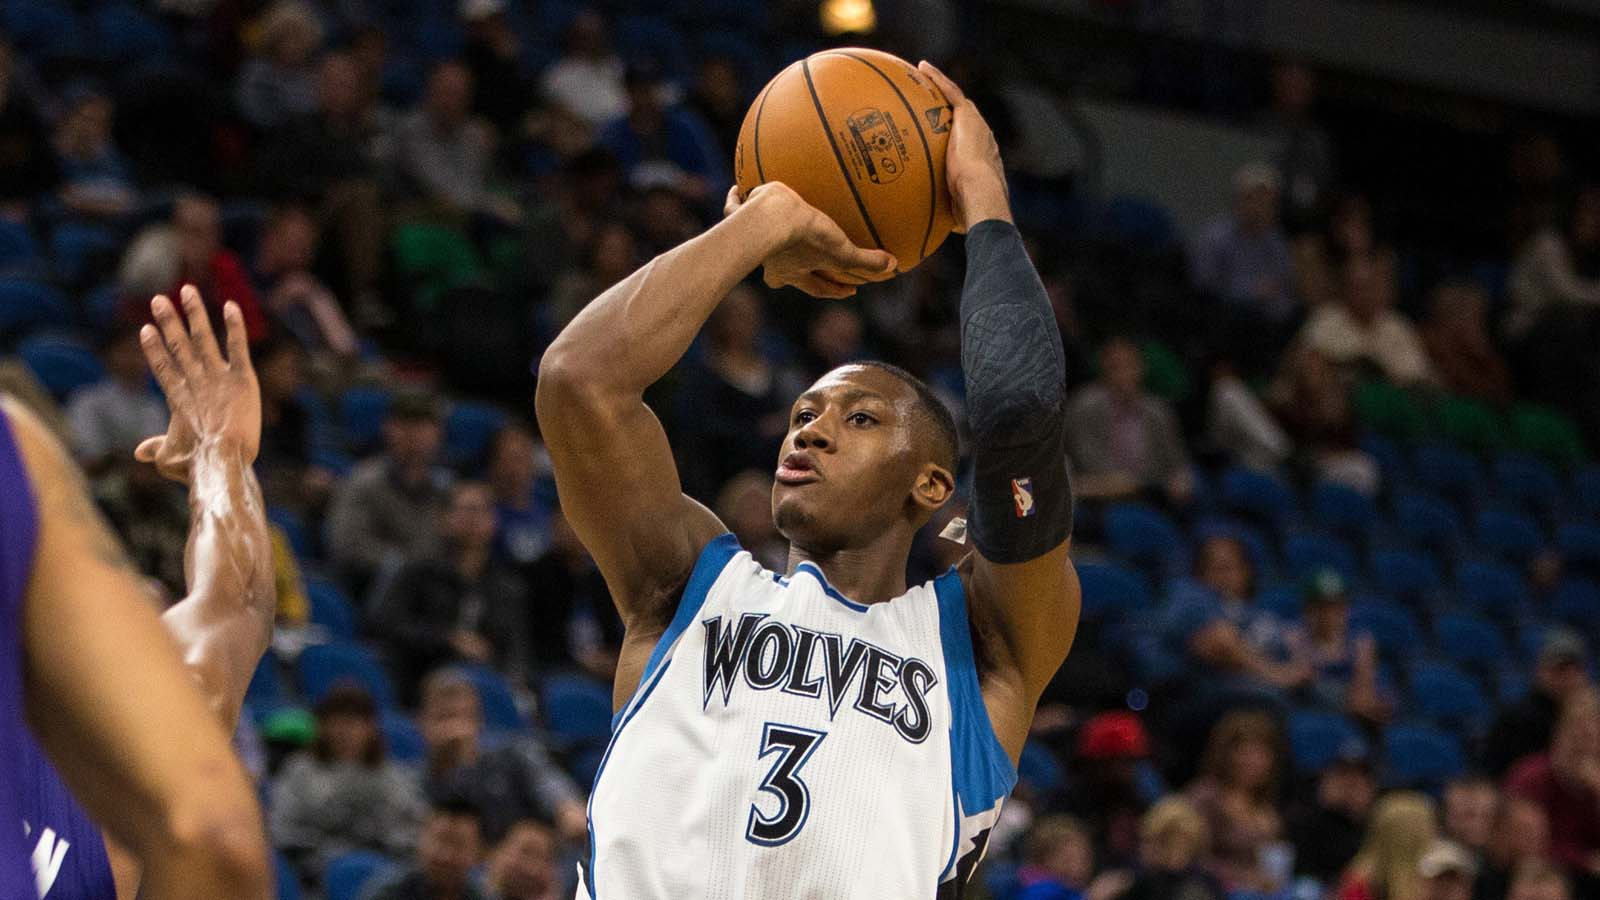 Timberwolves-Hornets Twi-lights: Minnesota rookie Dunn makes an impact